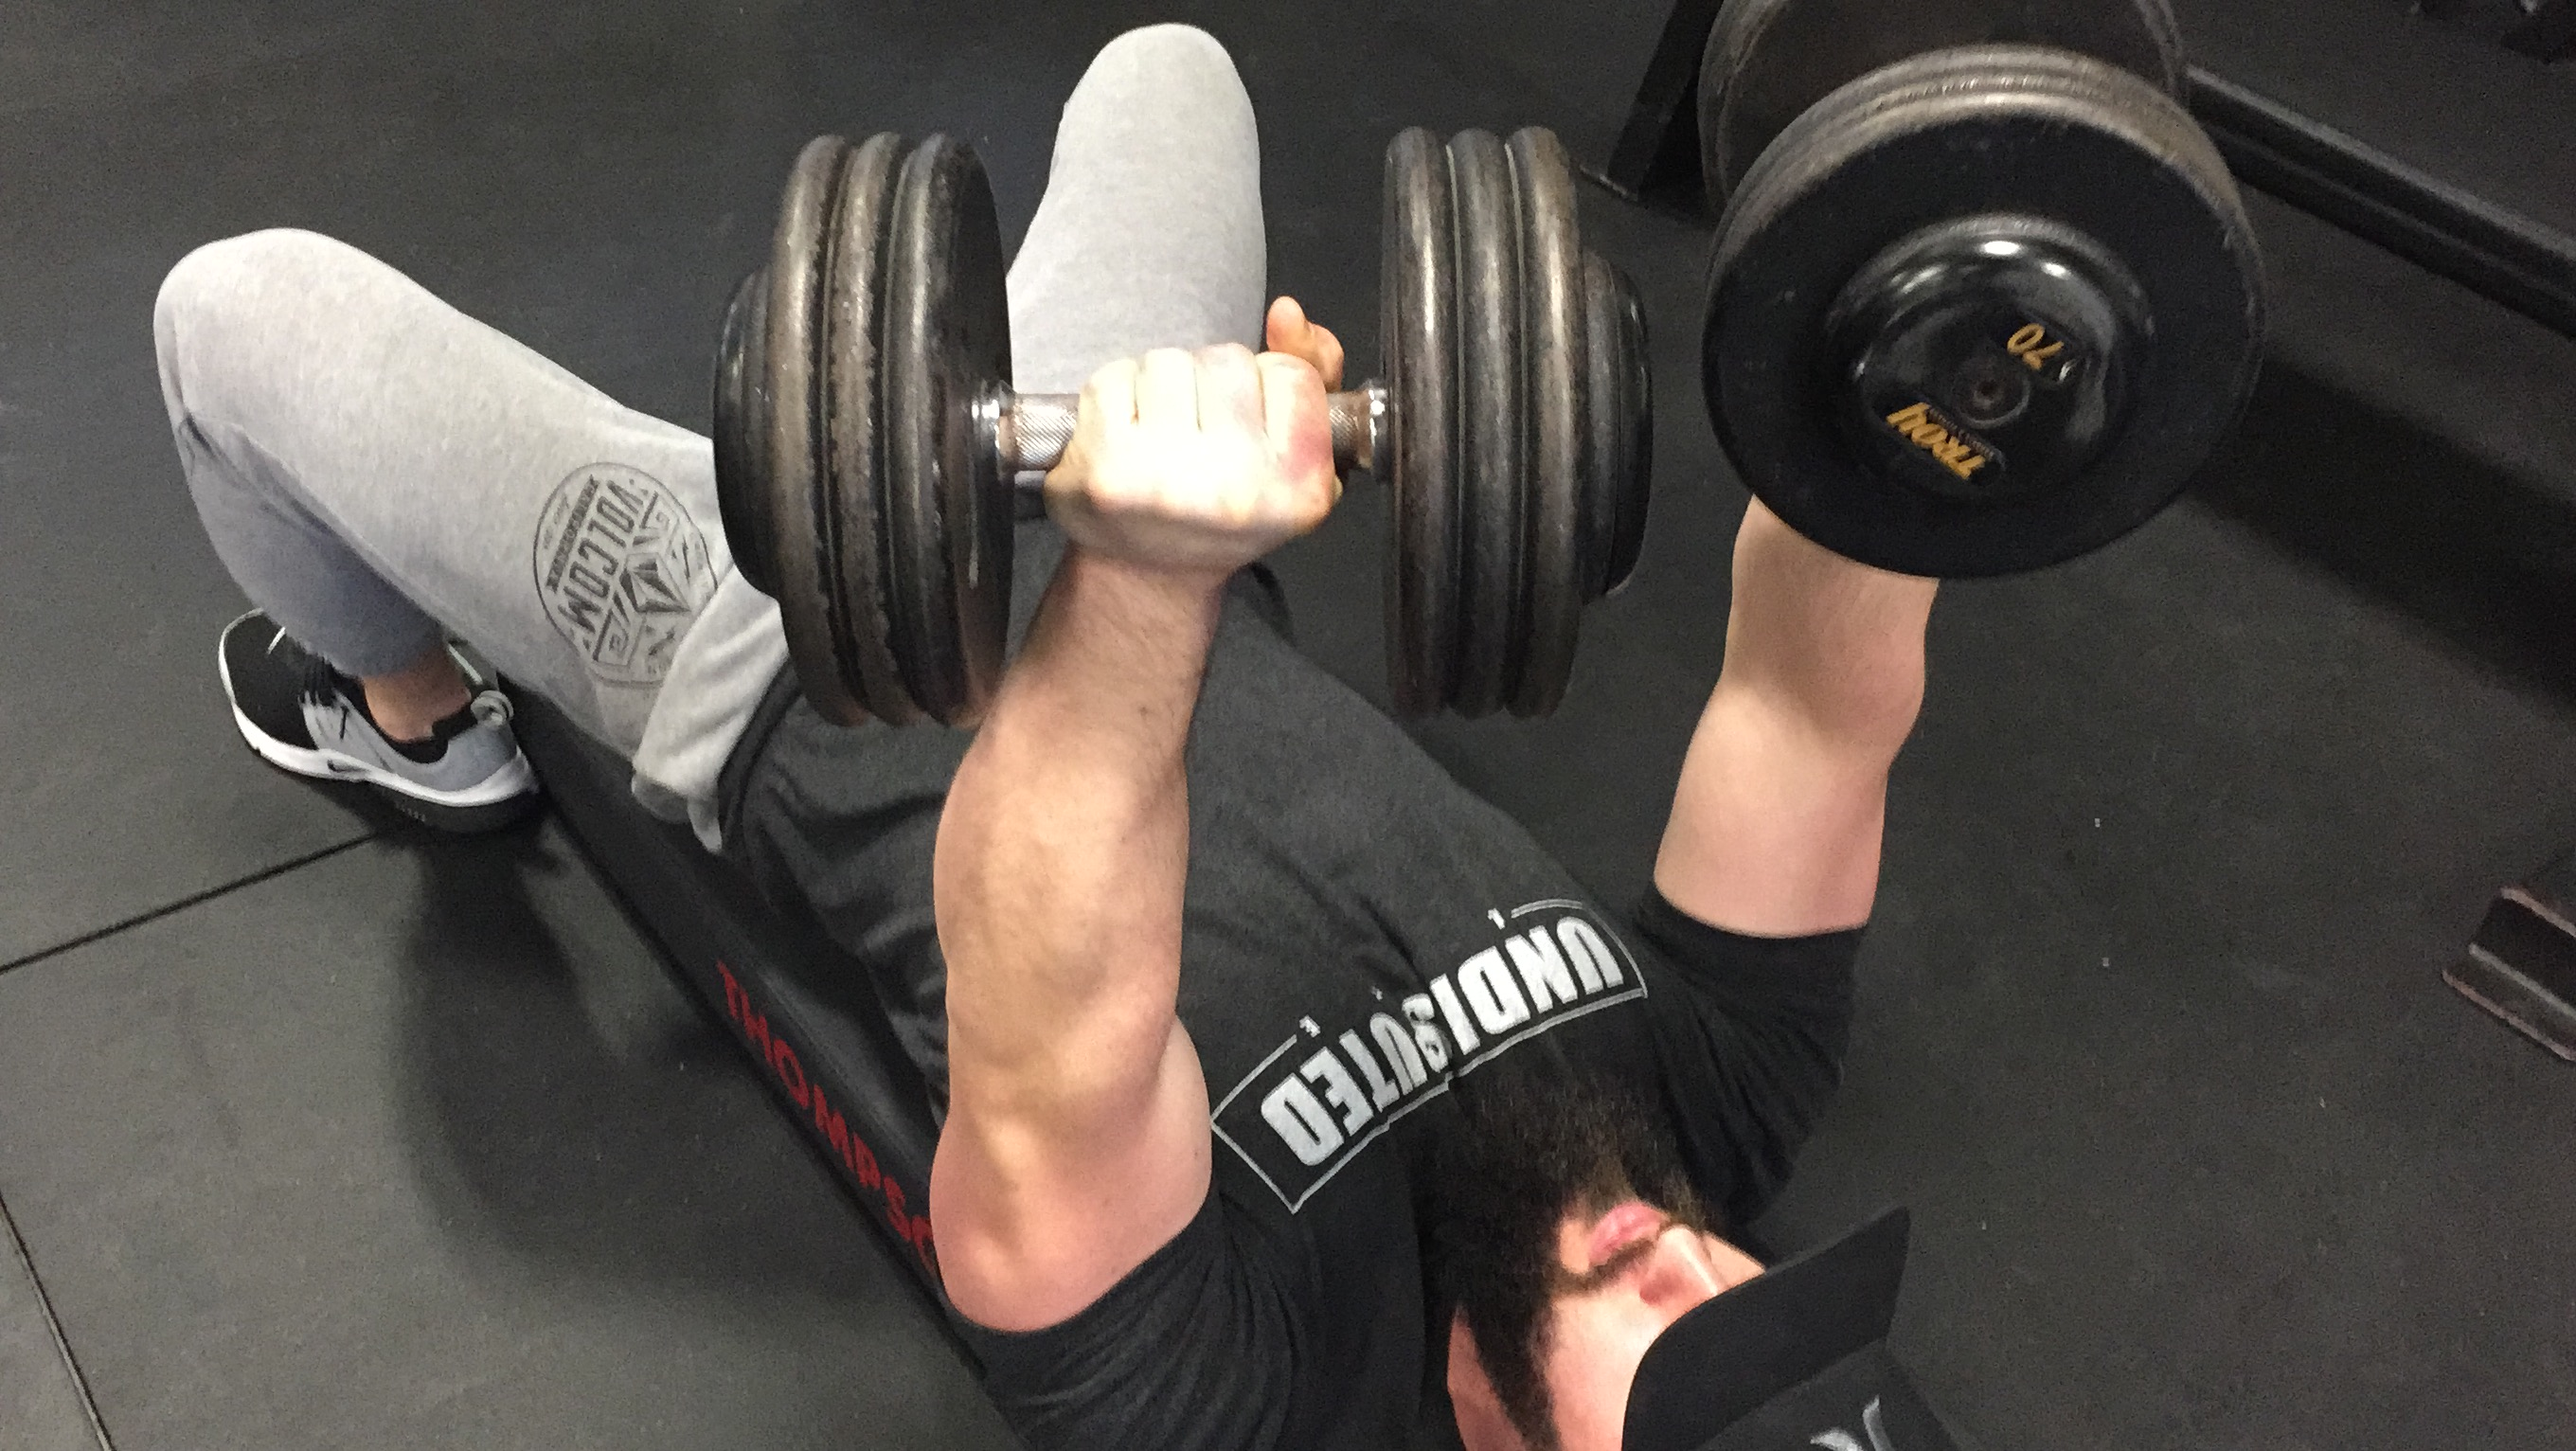 Fix Your Squat With RNT Diesel SC - Weight lifting floor pads